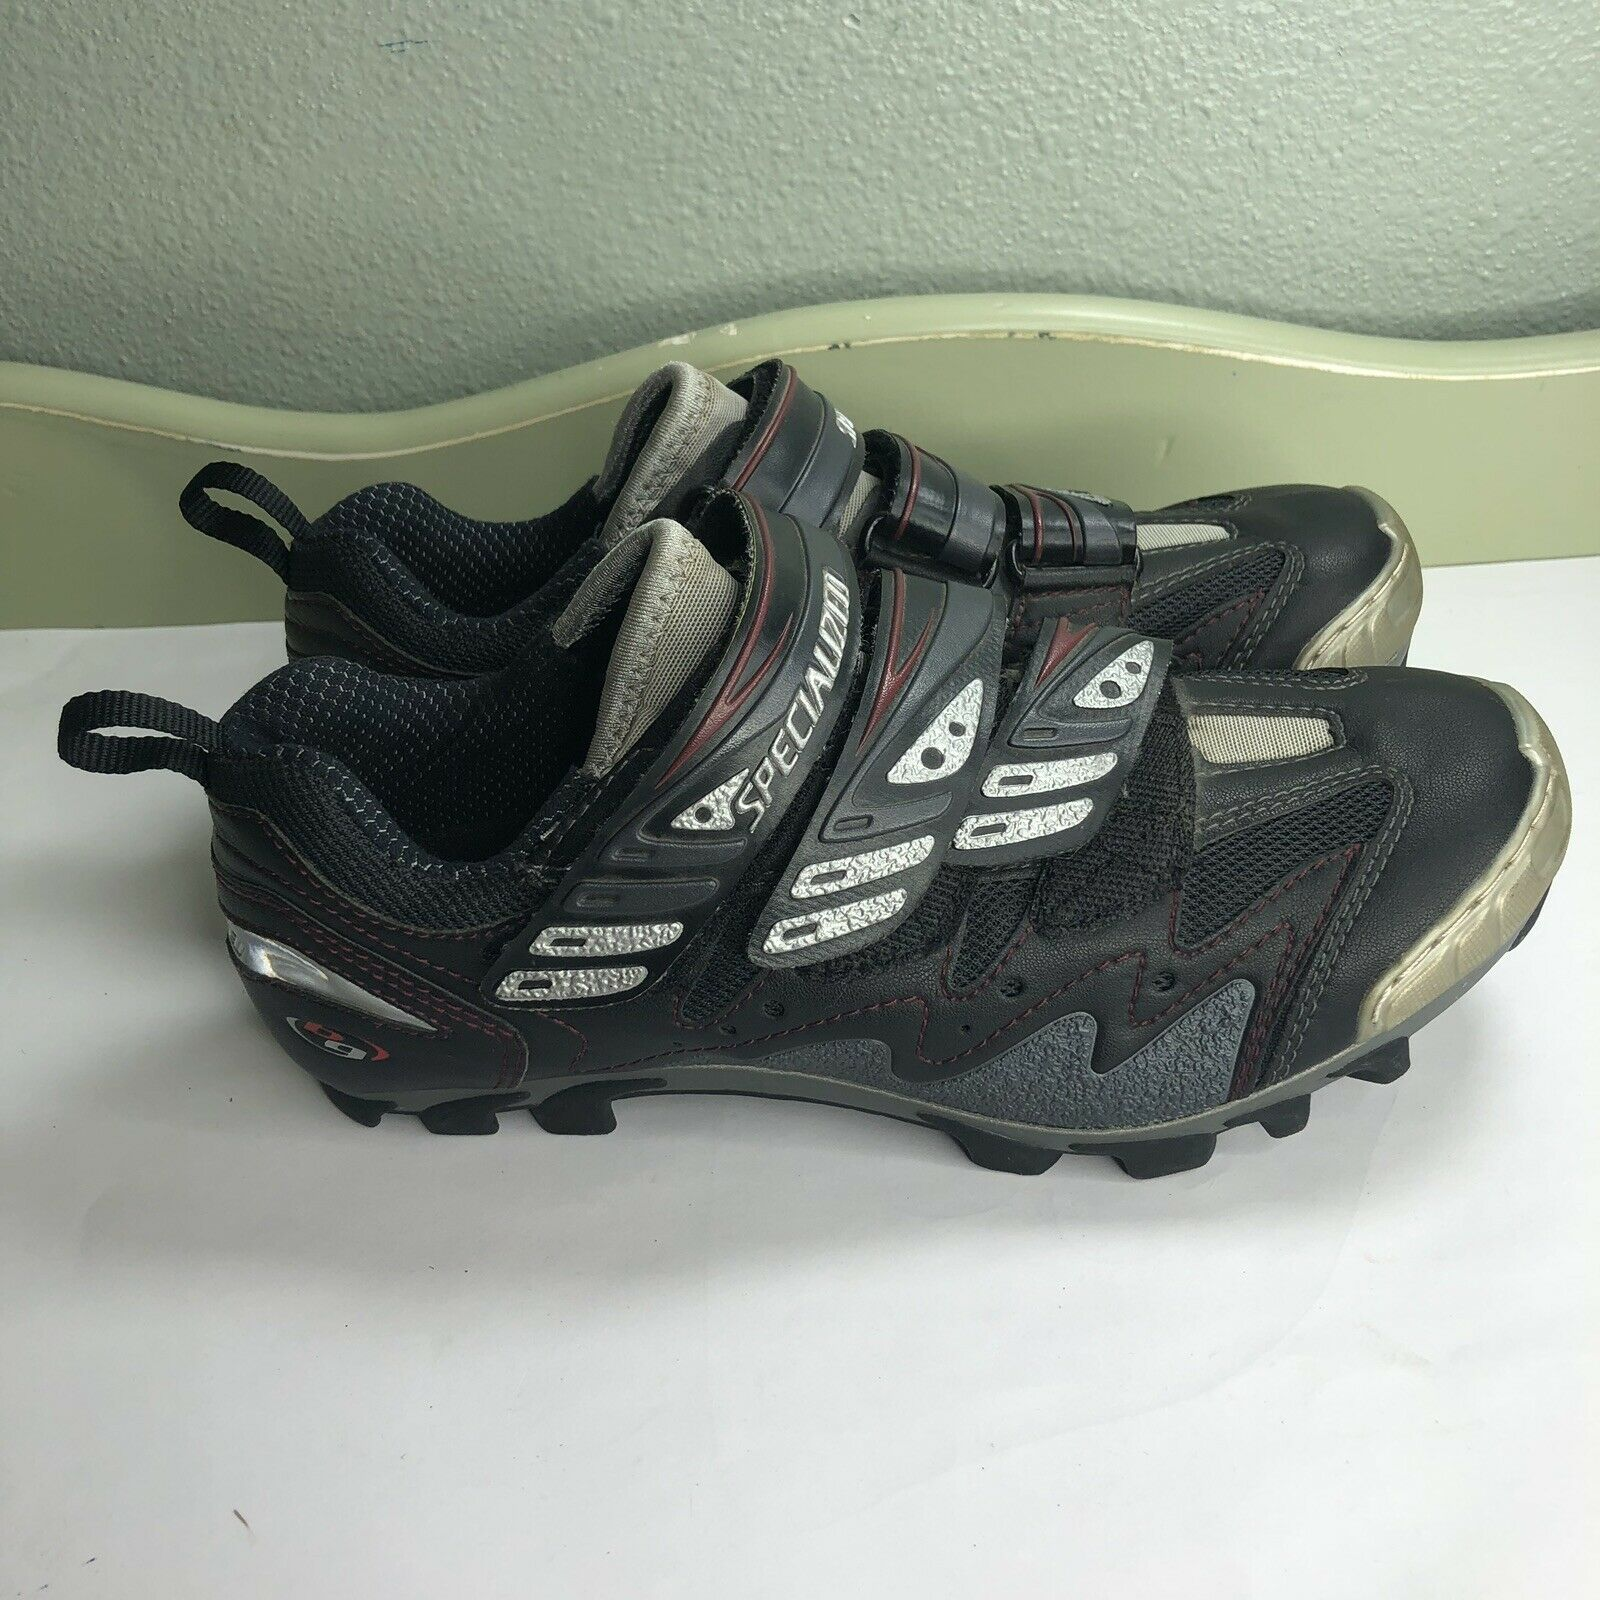 Specialized cycling shoes Women Size 9 Great Condition